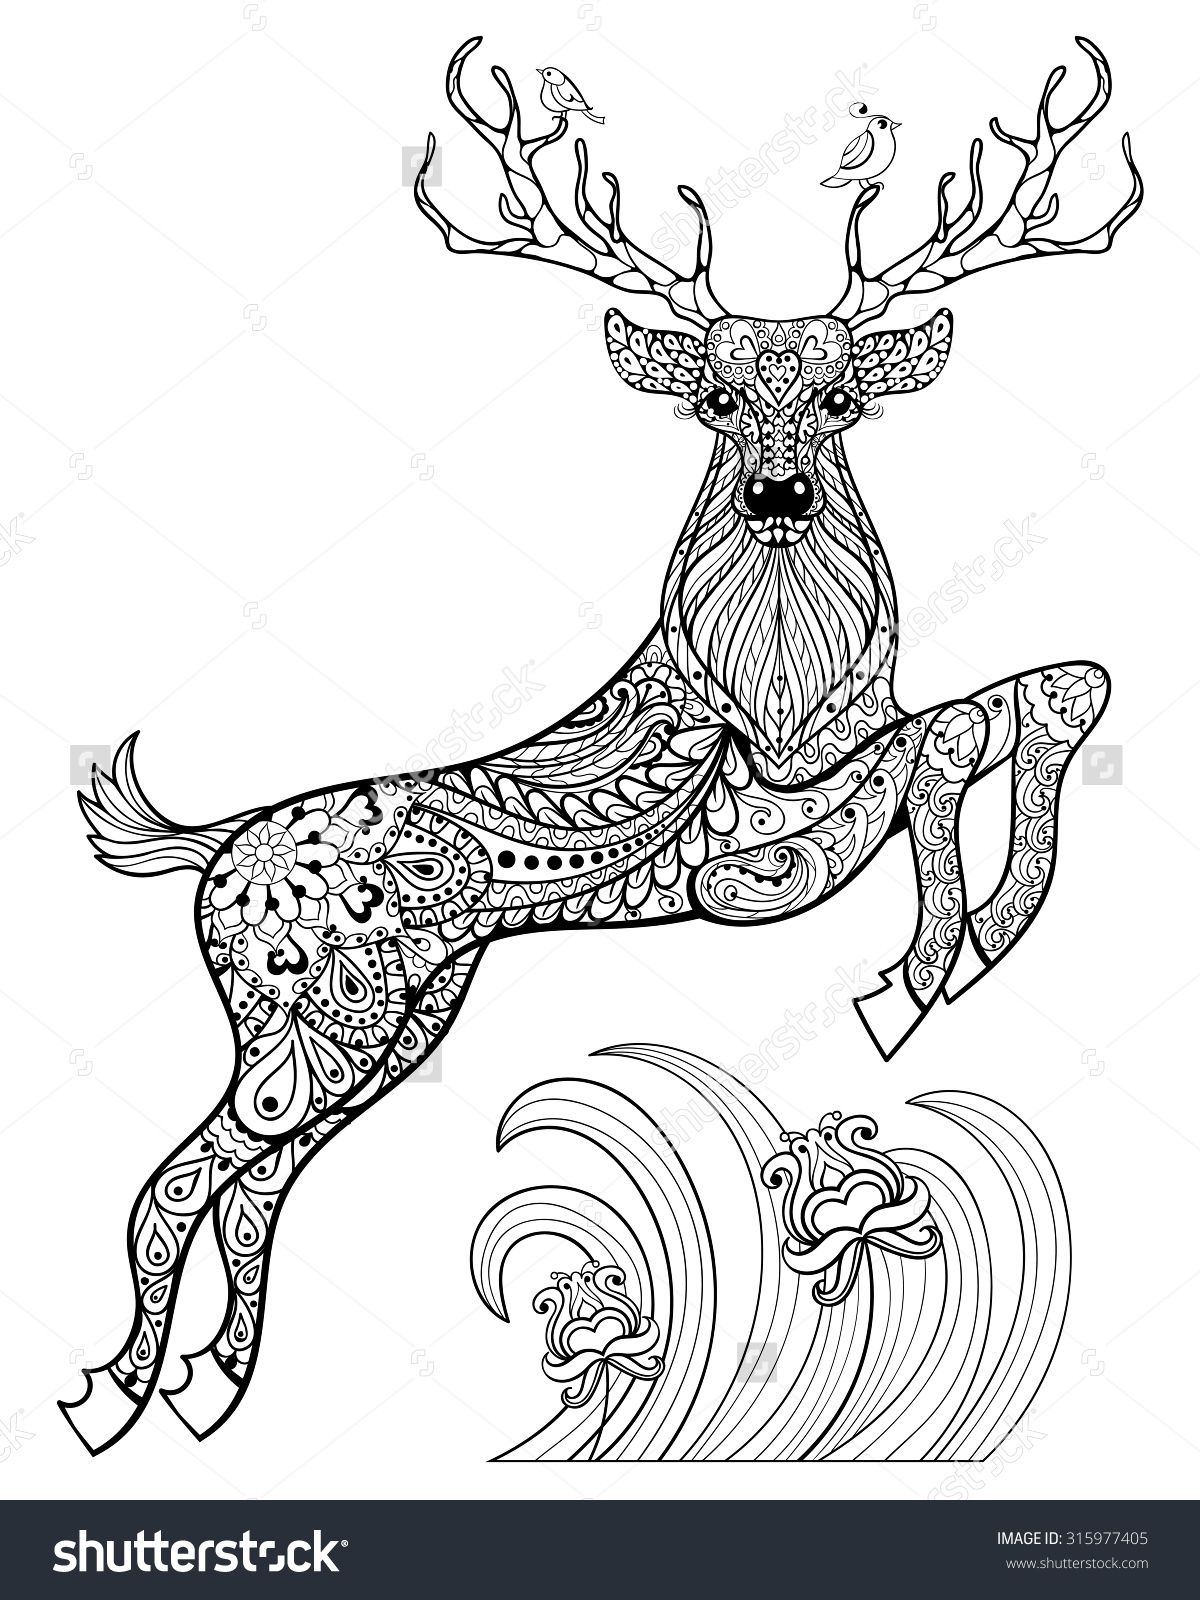 Anti stress colouring pages for adults - Deer Coloring Pages For Adults